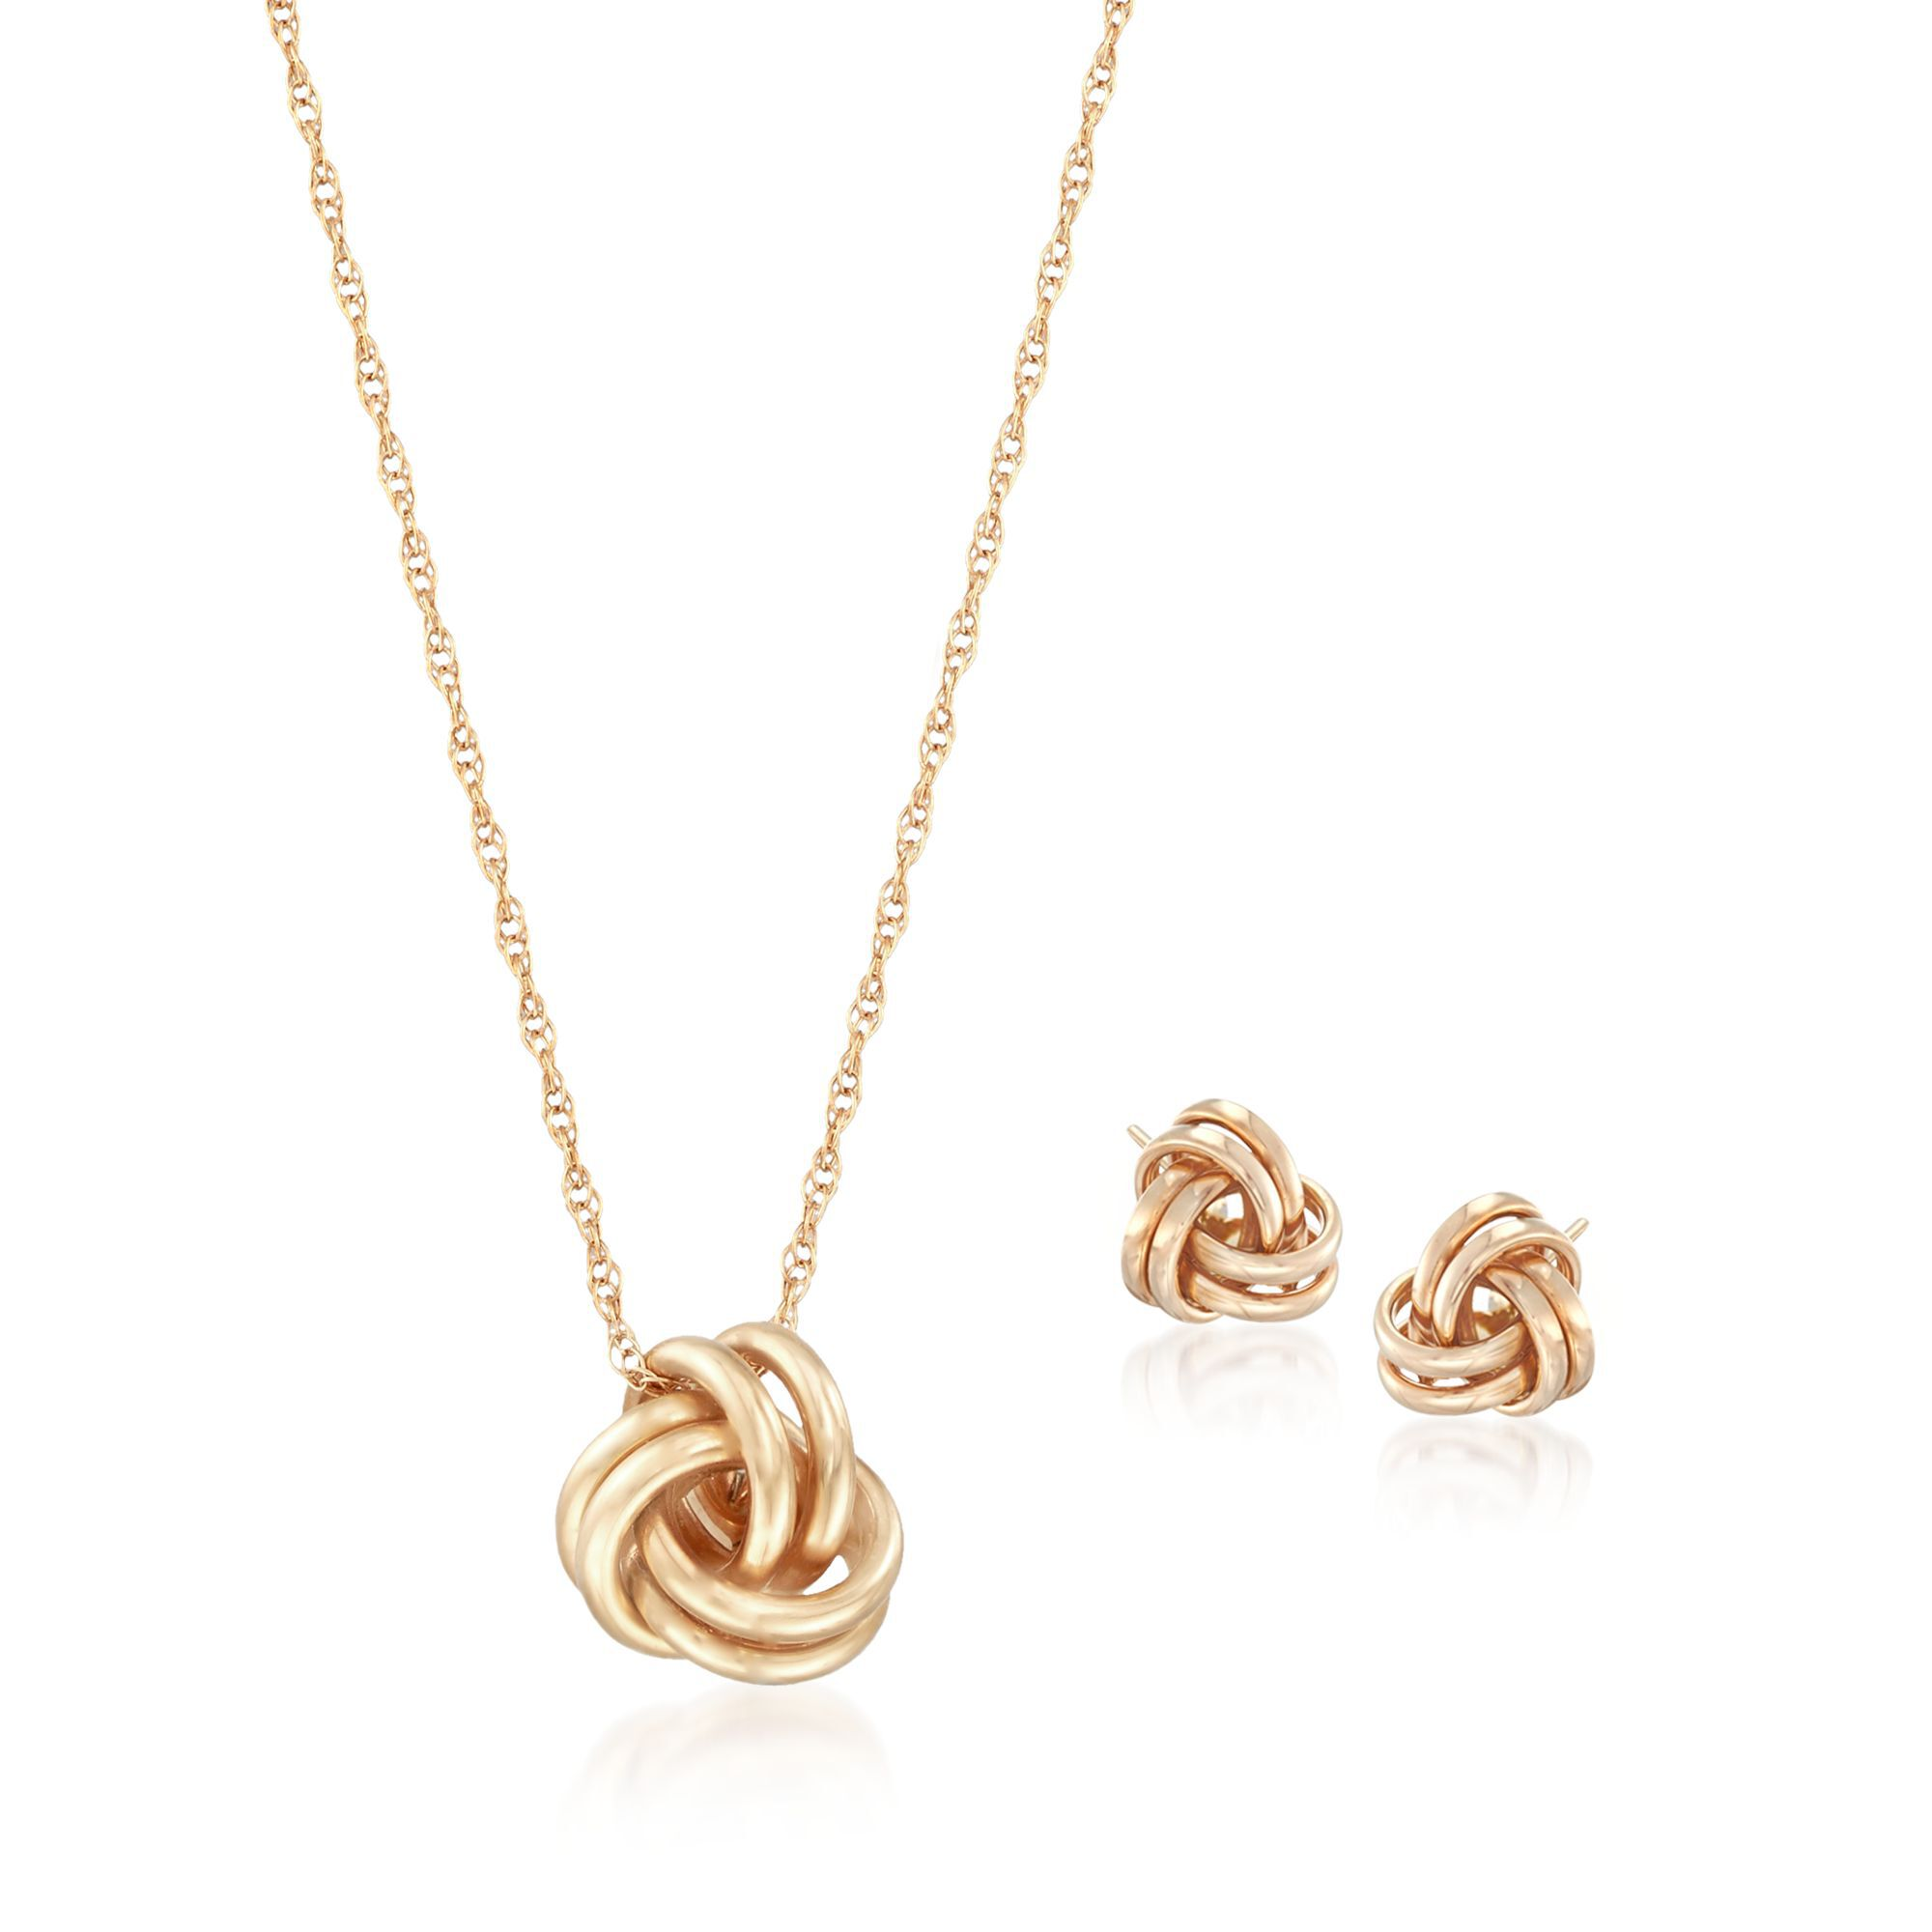 14k Yellow Gold and Rose Gold Open Love Knot Heart Cross Pendant Necklace